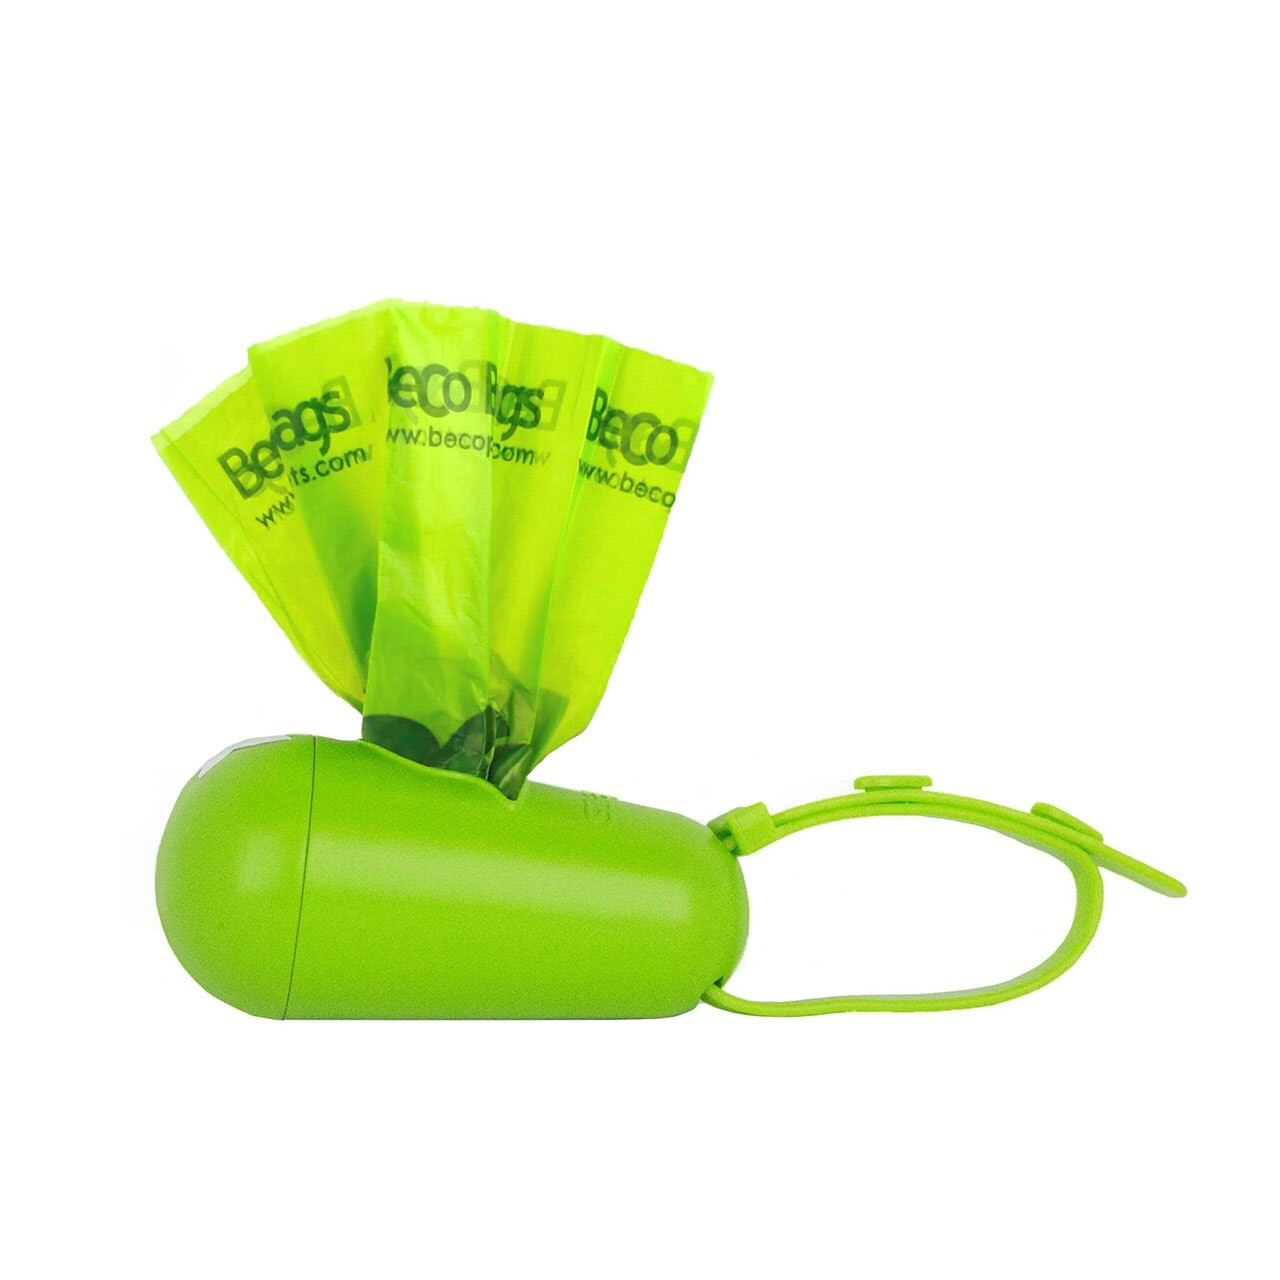 Beco Pod Poop Bag Dispenser With 15 Eco- Friendly Degradable Bags For Dogs